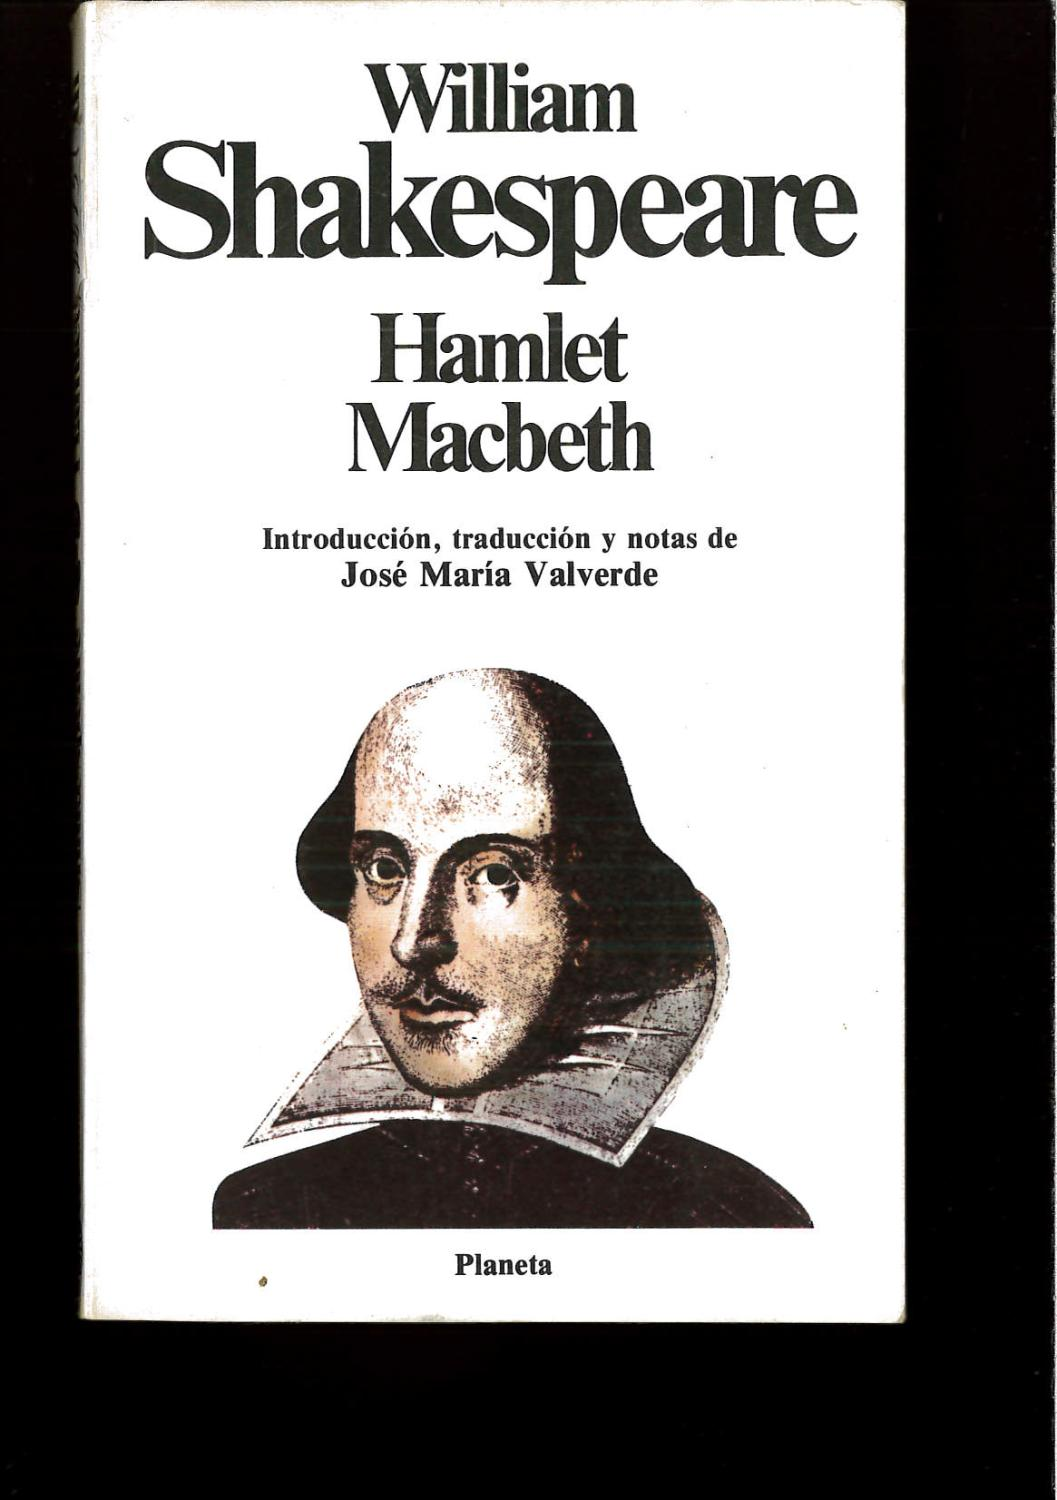 works such as hamlet and macbeth which depict the downfall of a hero